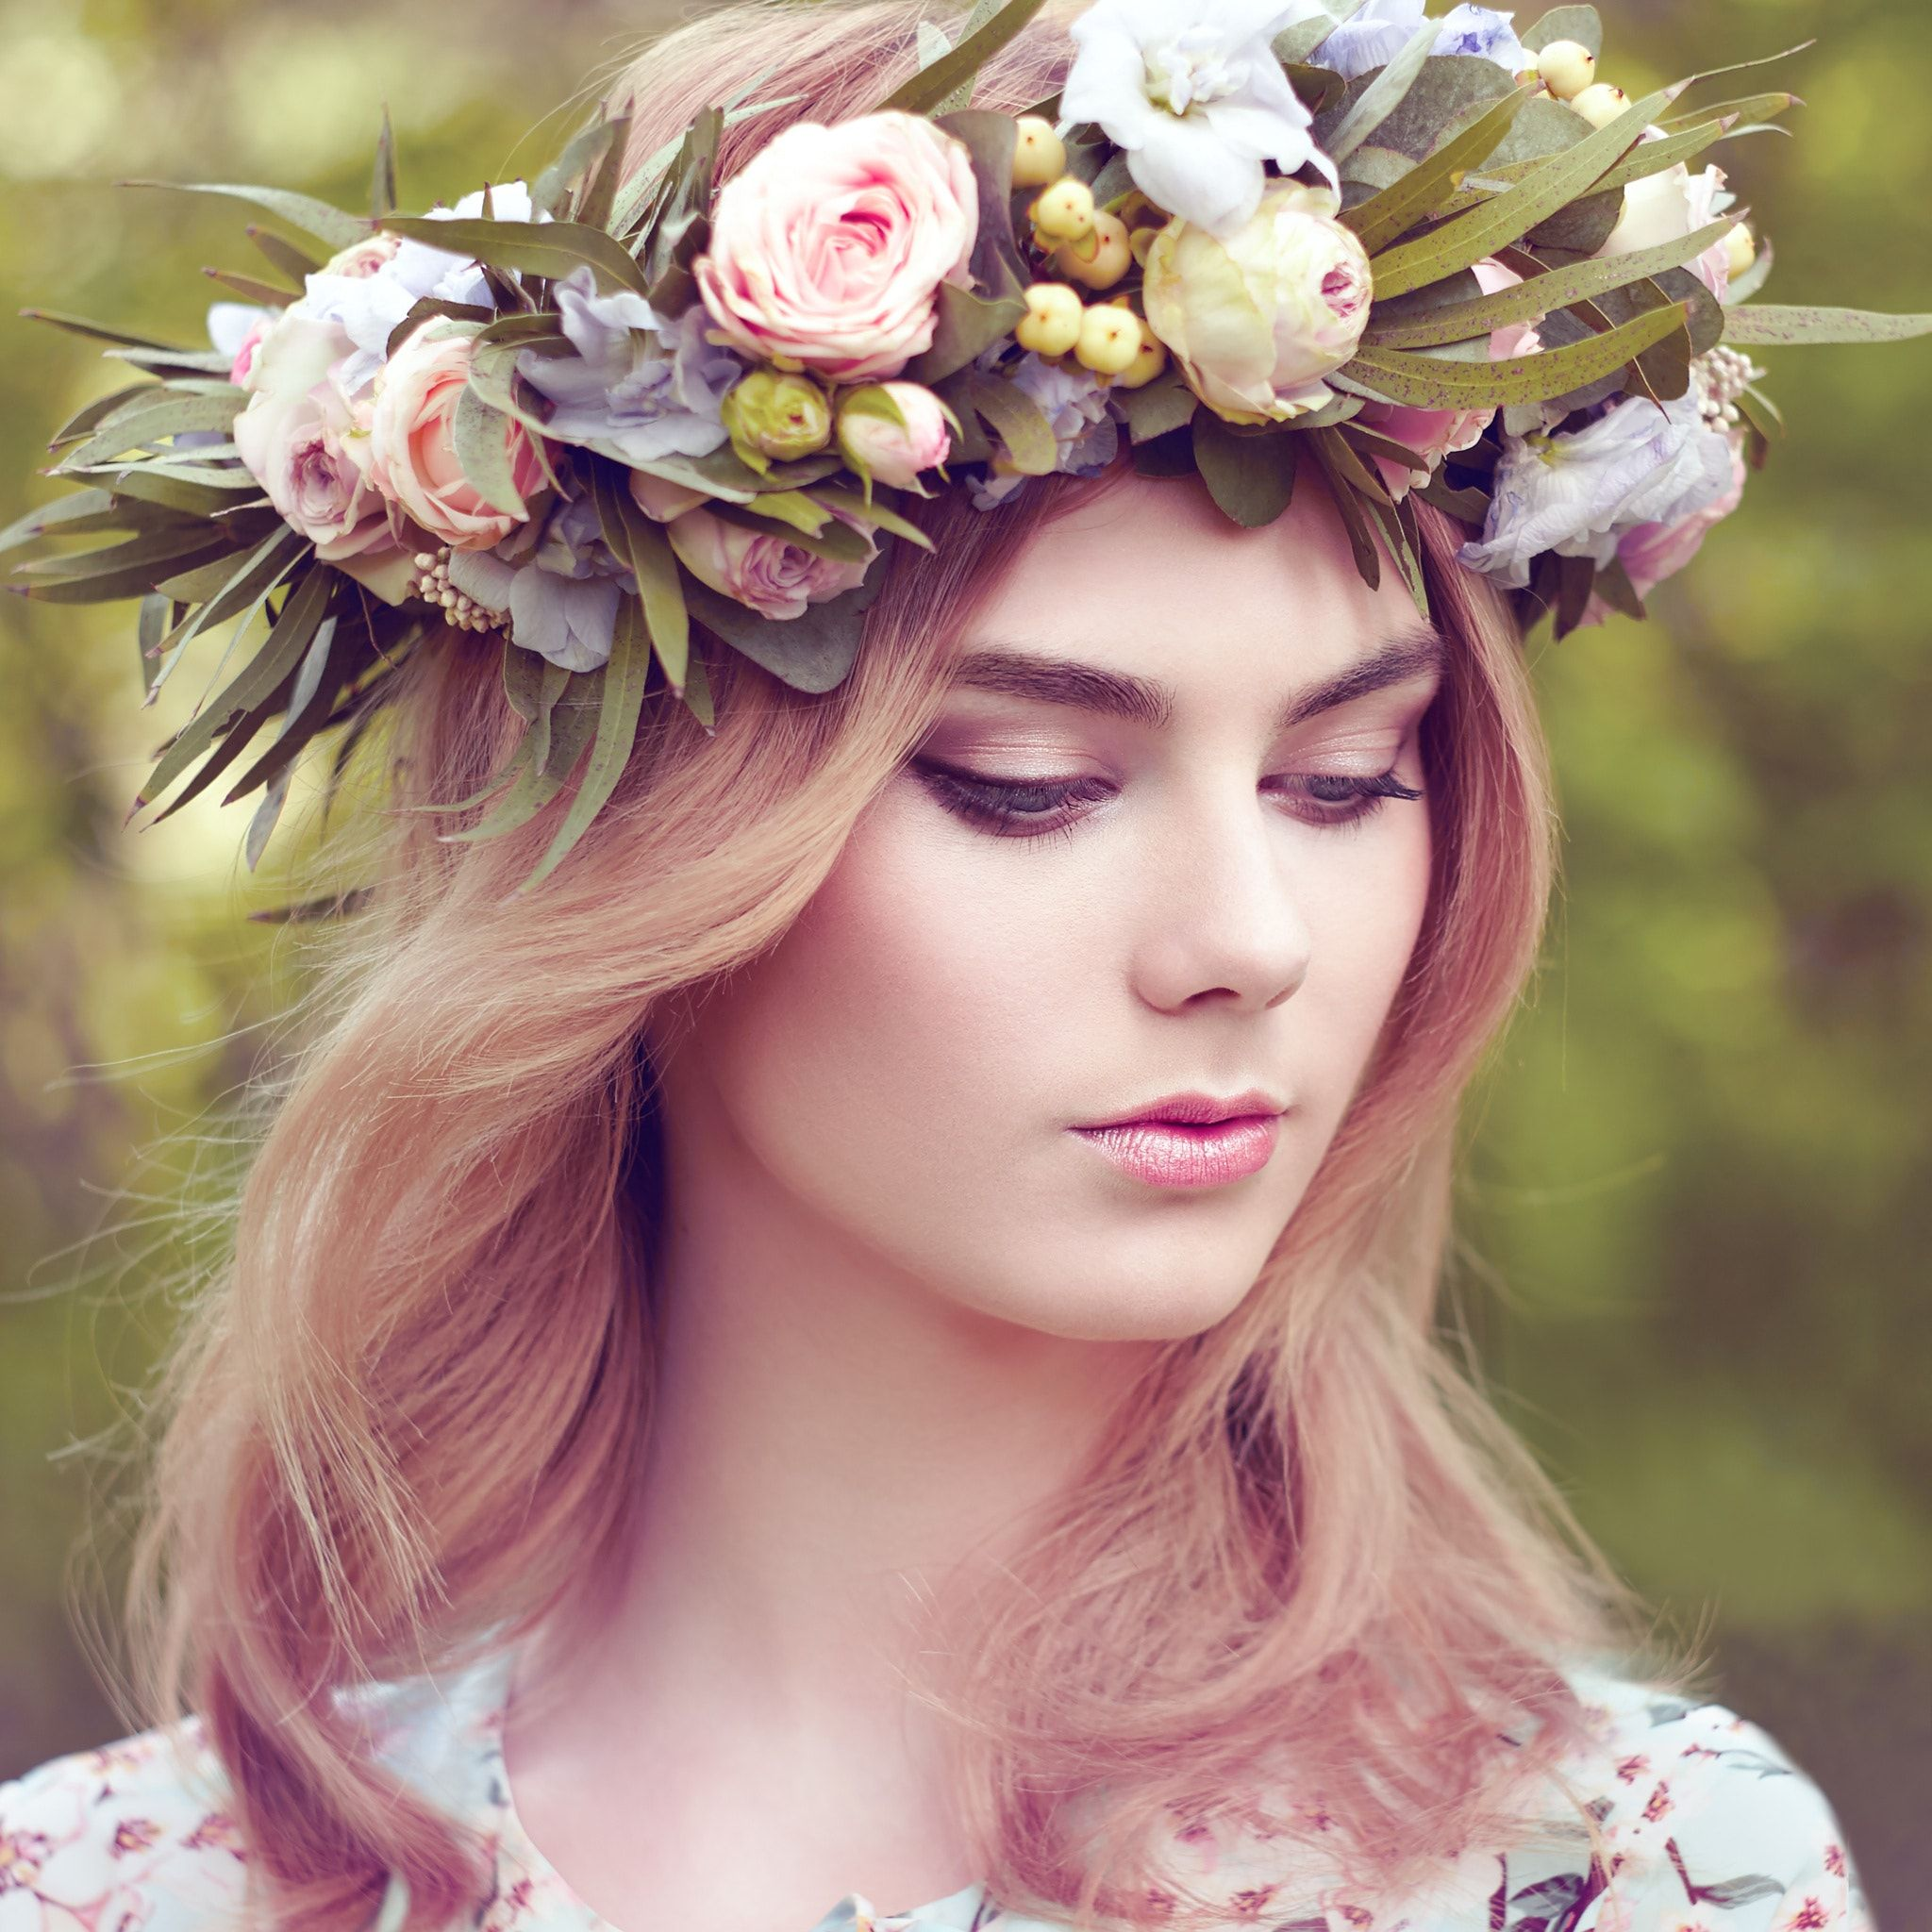 Beautiful blonde woman with flower wreath on her head beautiful beautiful blonde woman with flower wreath on her head beautiful blonde woman with flower wreath on her head beauty girl with flowers hairstyle izmirmasajfo